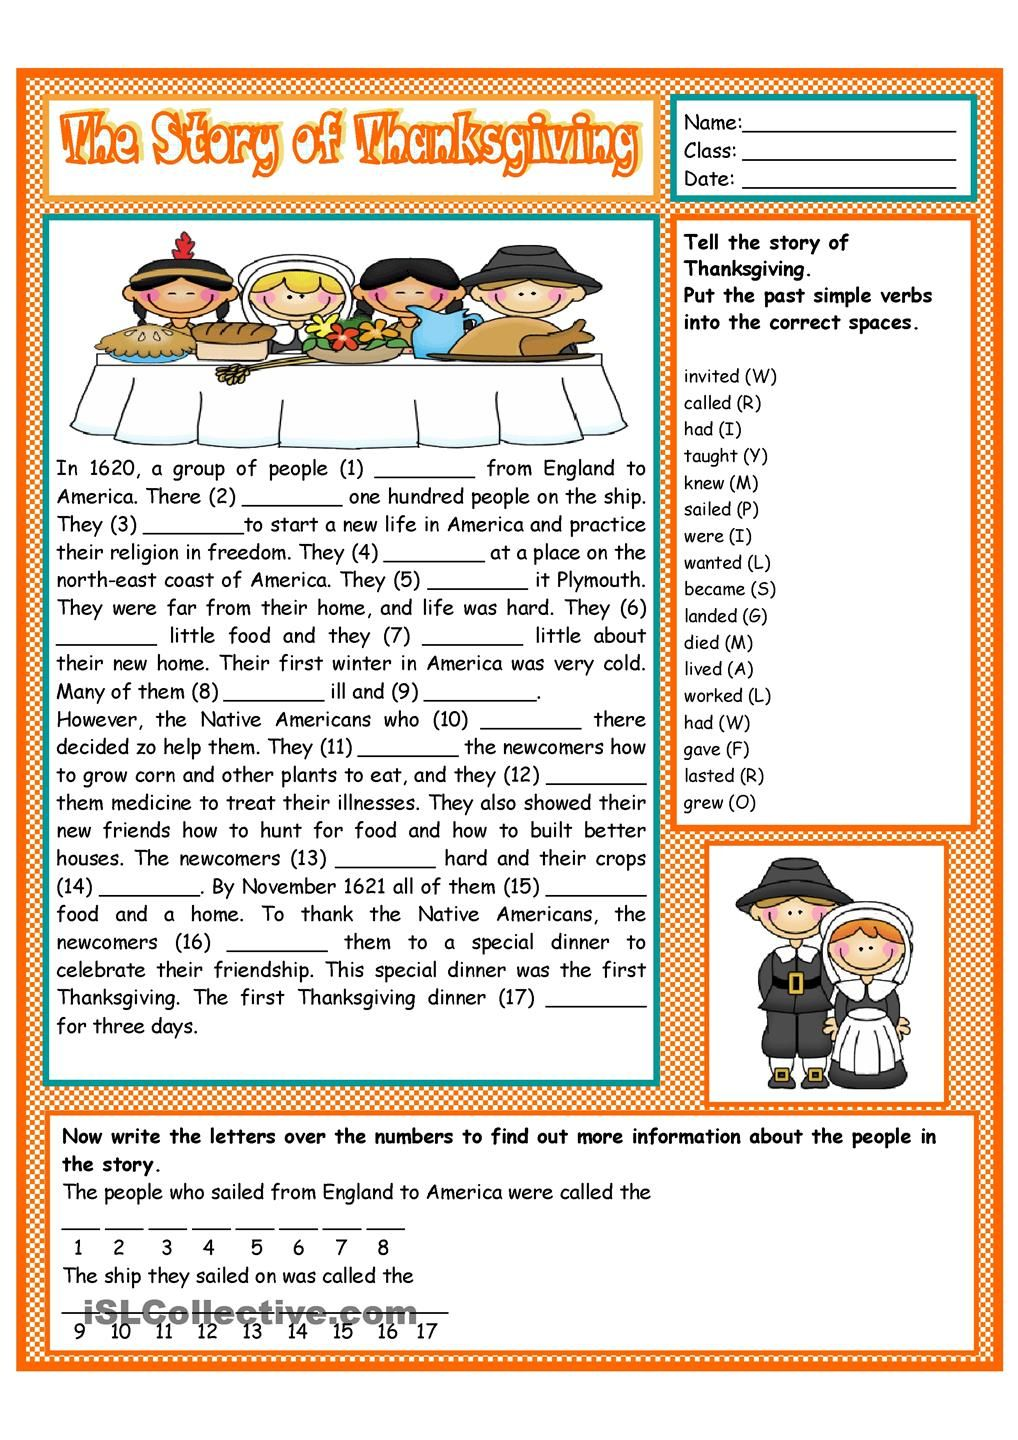 The Story Of Thanksgiving Thanksgiving Stories Thanksgiving Reading Comprehension Thanksgiving Readings [ 1440 x 1018 Pixel ]